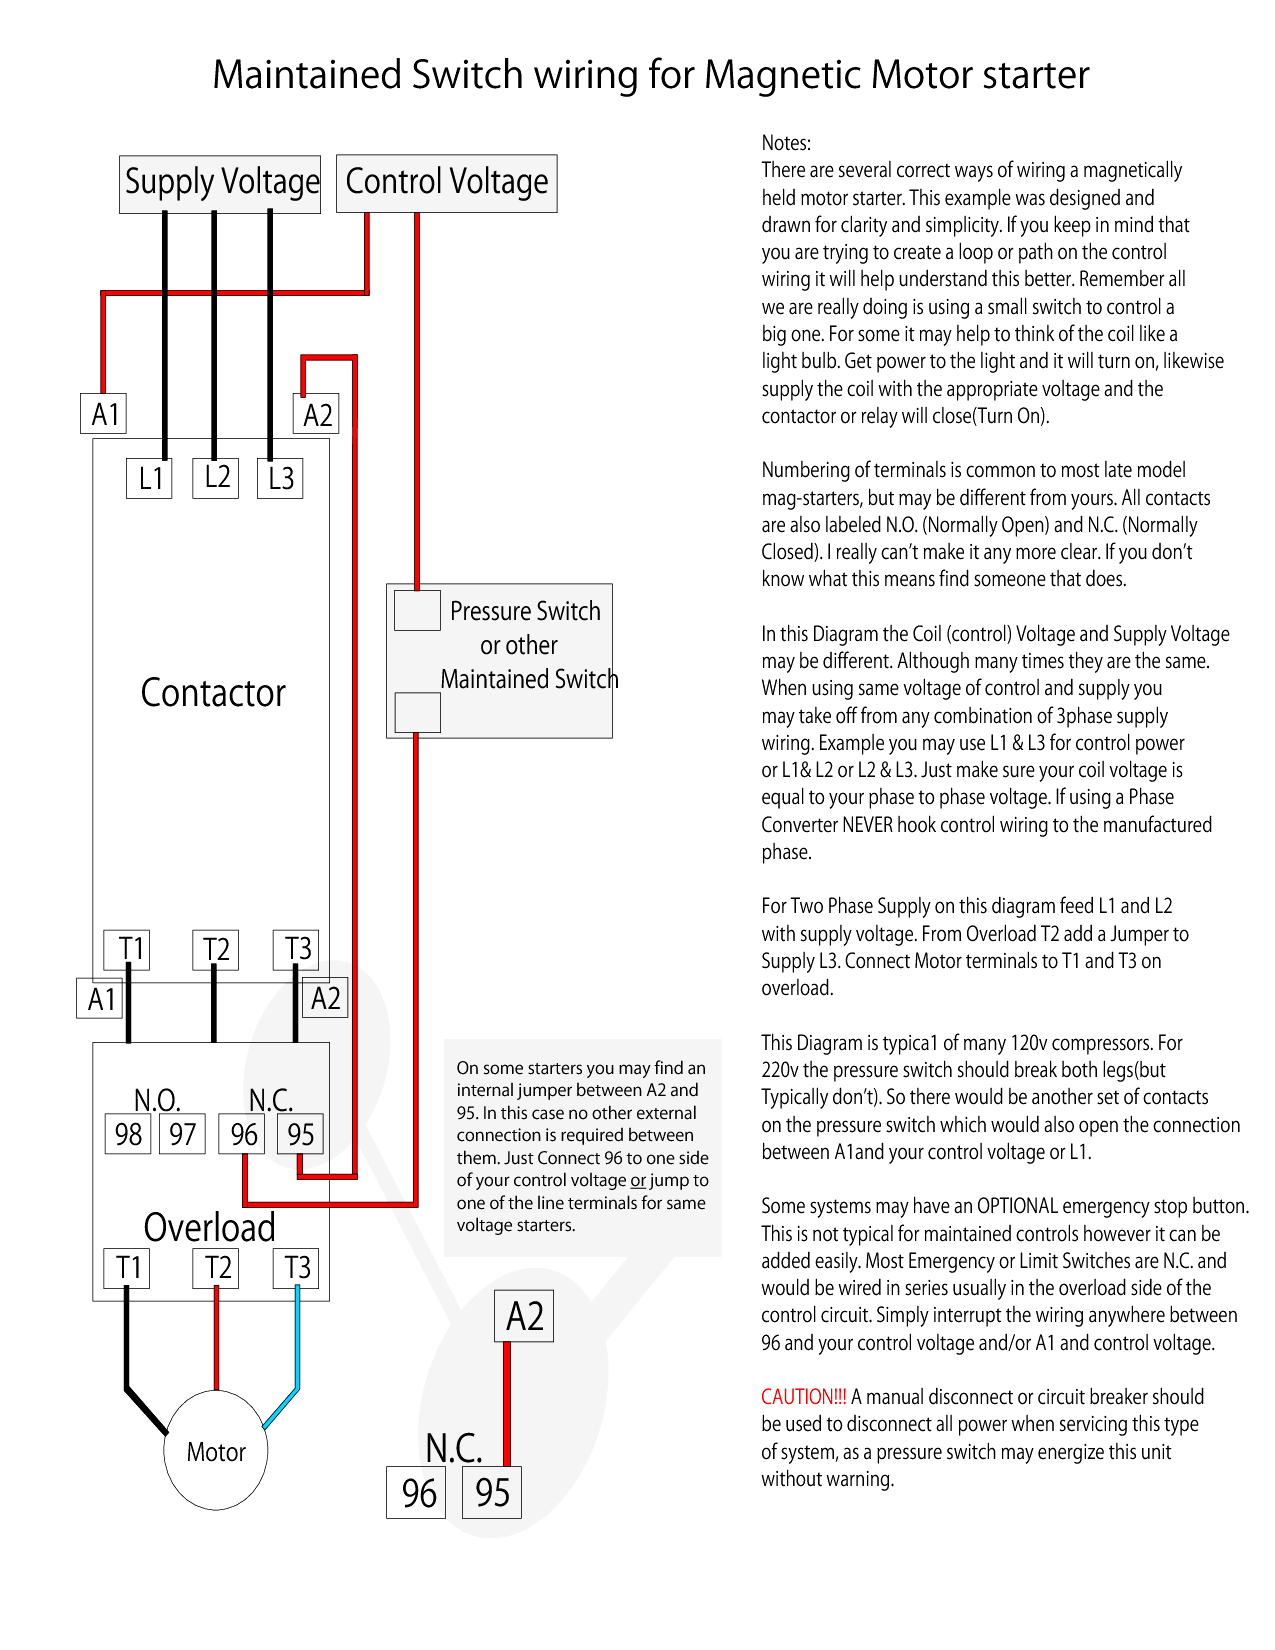 eaton motor starter wiring diagram Collection-Cutler Hammer Contactor Wiring Diagram Beautiful Cessna solenoids Installed Eaton Starter Contactor 9-n